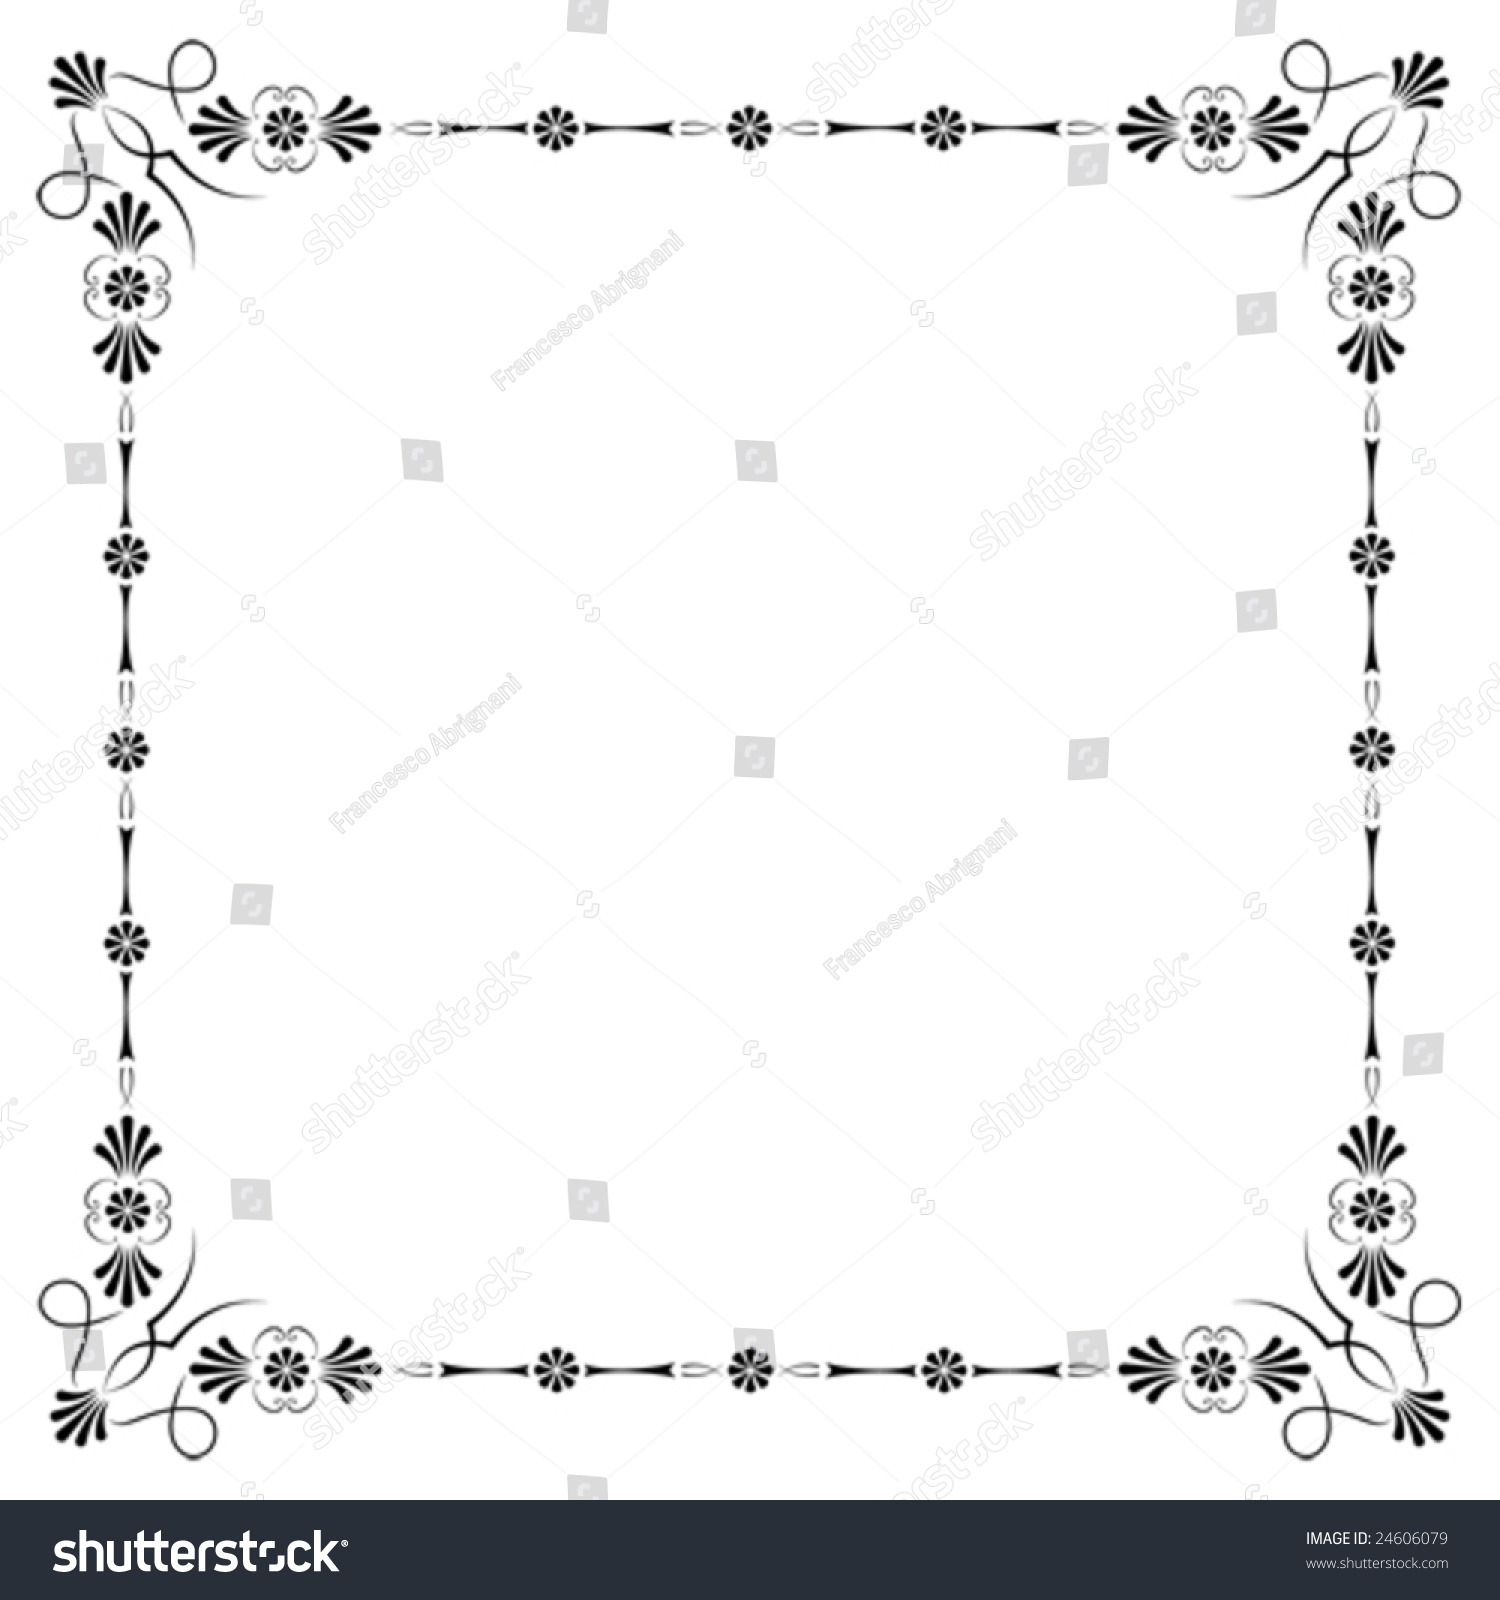 Corners borders page decorations very easy stock vector for Assignment front page decoration